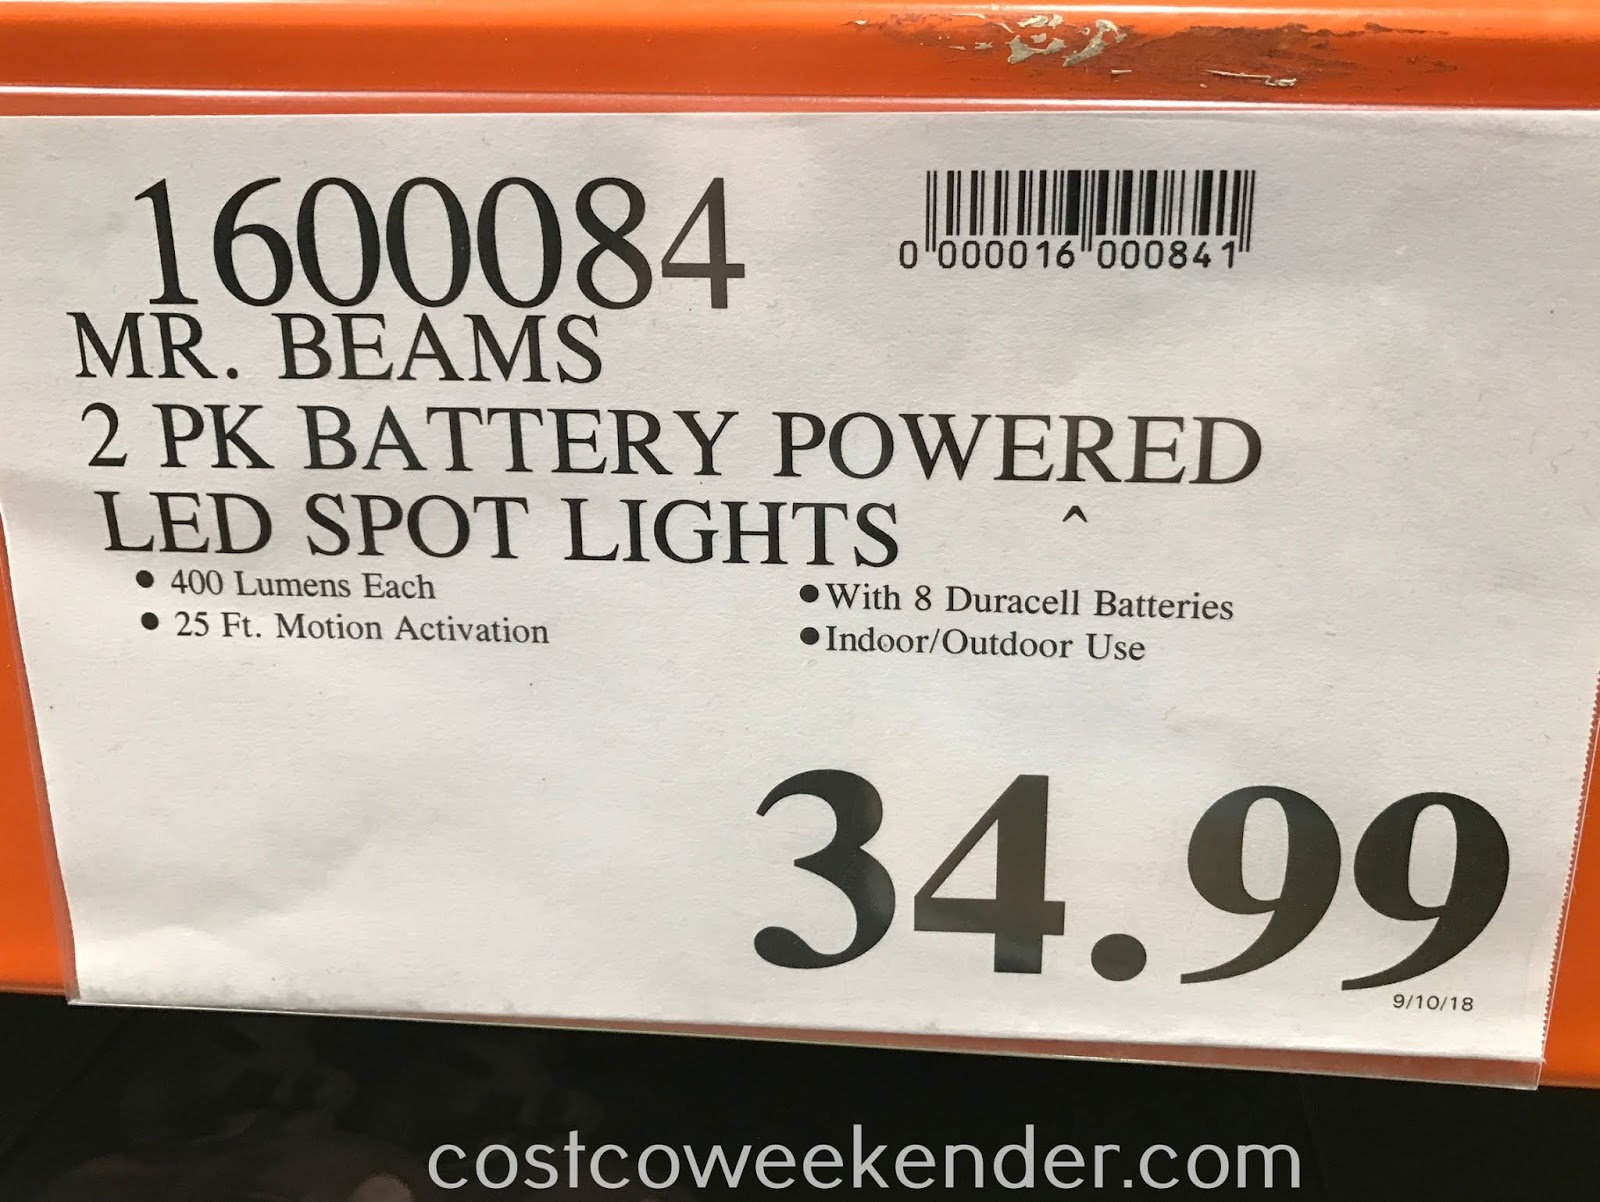 Deal for a pack of 2 Mr Beams LED Ultra Bright Spotlights at Costco